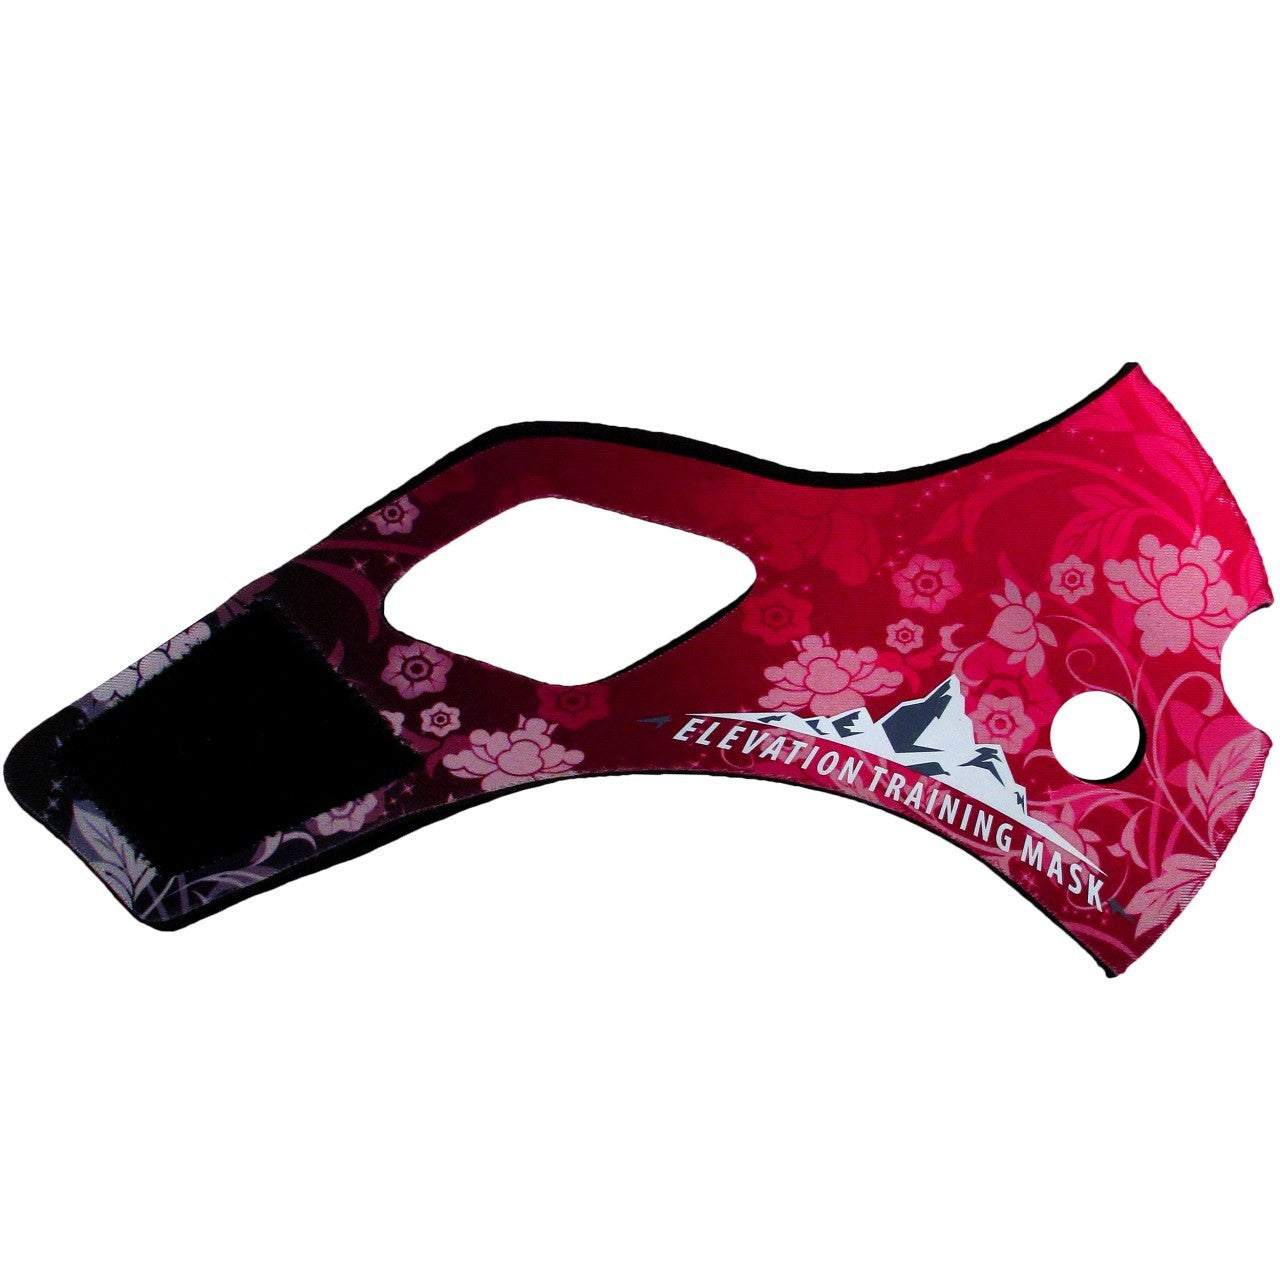 Training Mask 2.0 Dark Pink Floral Sleeve